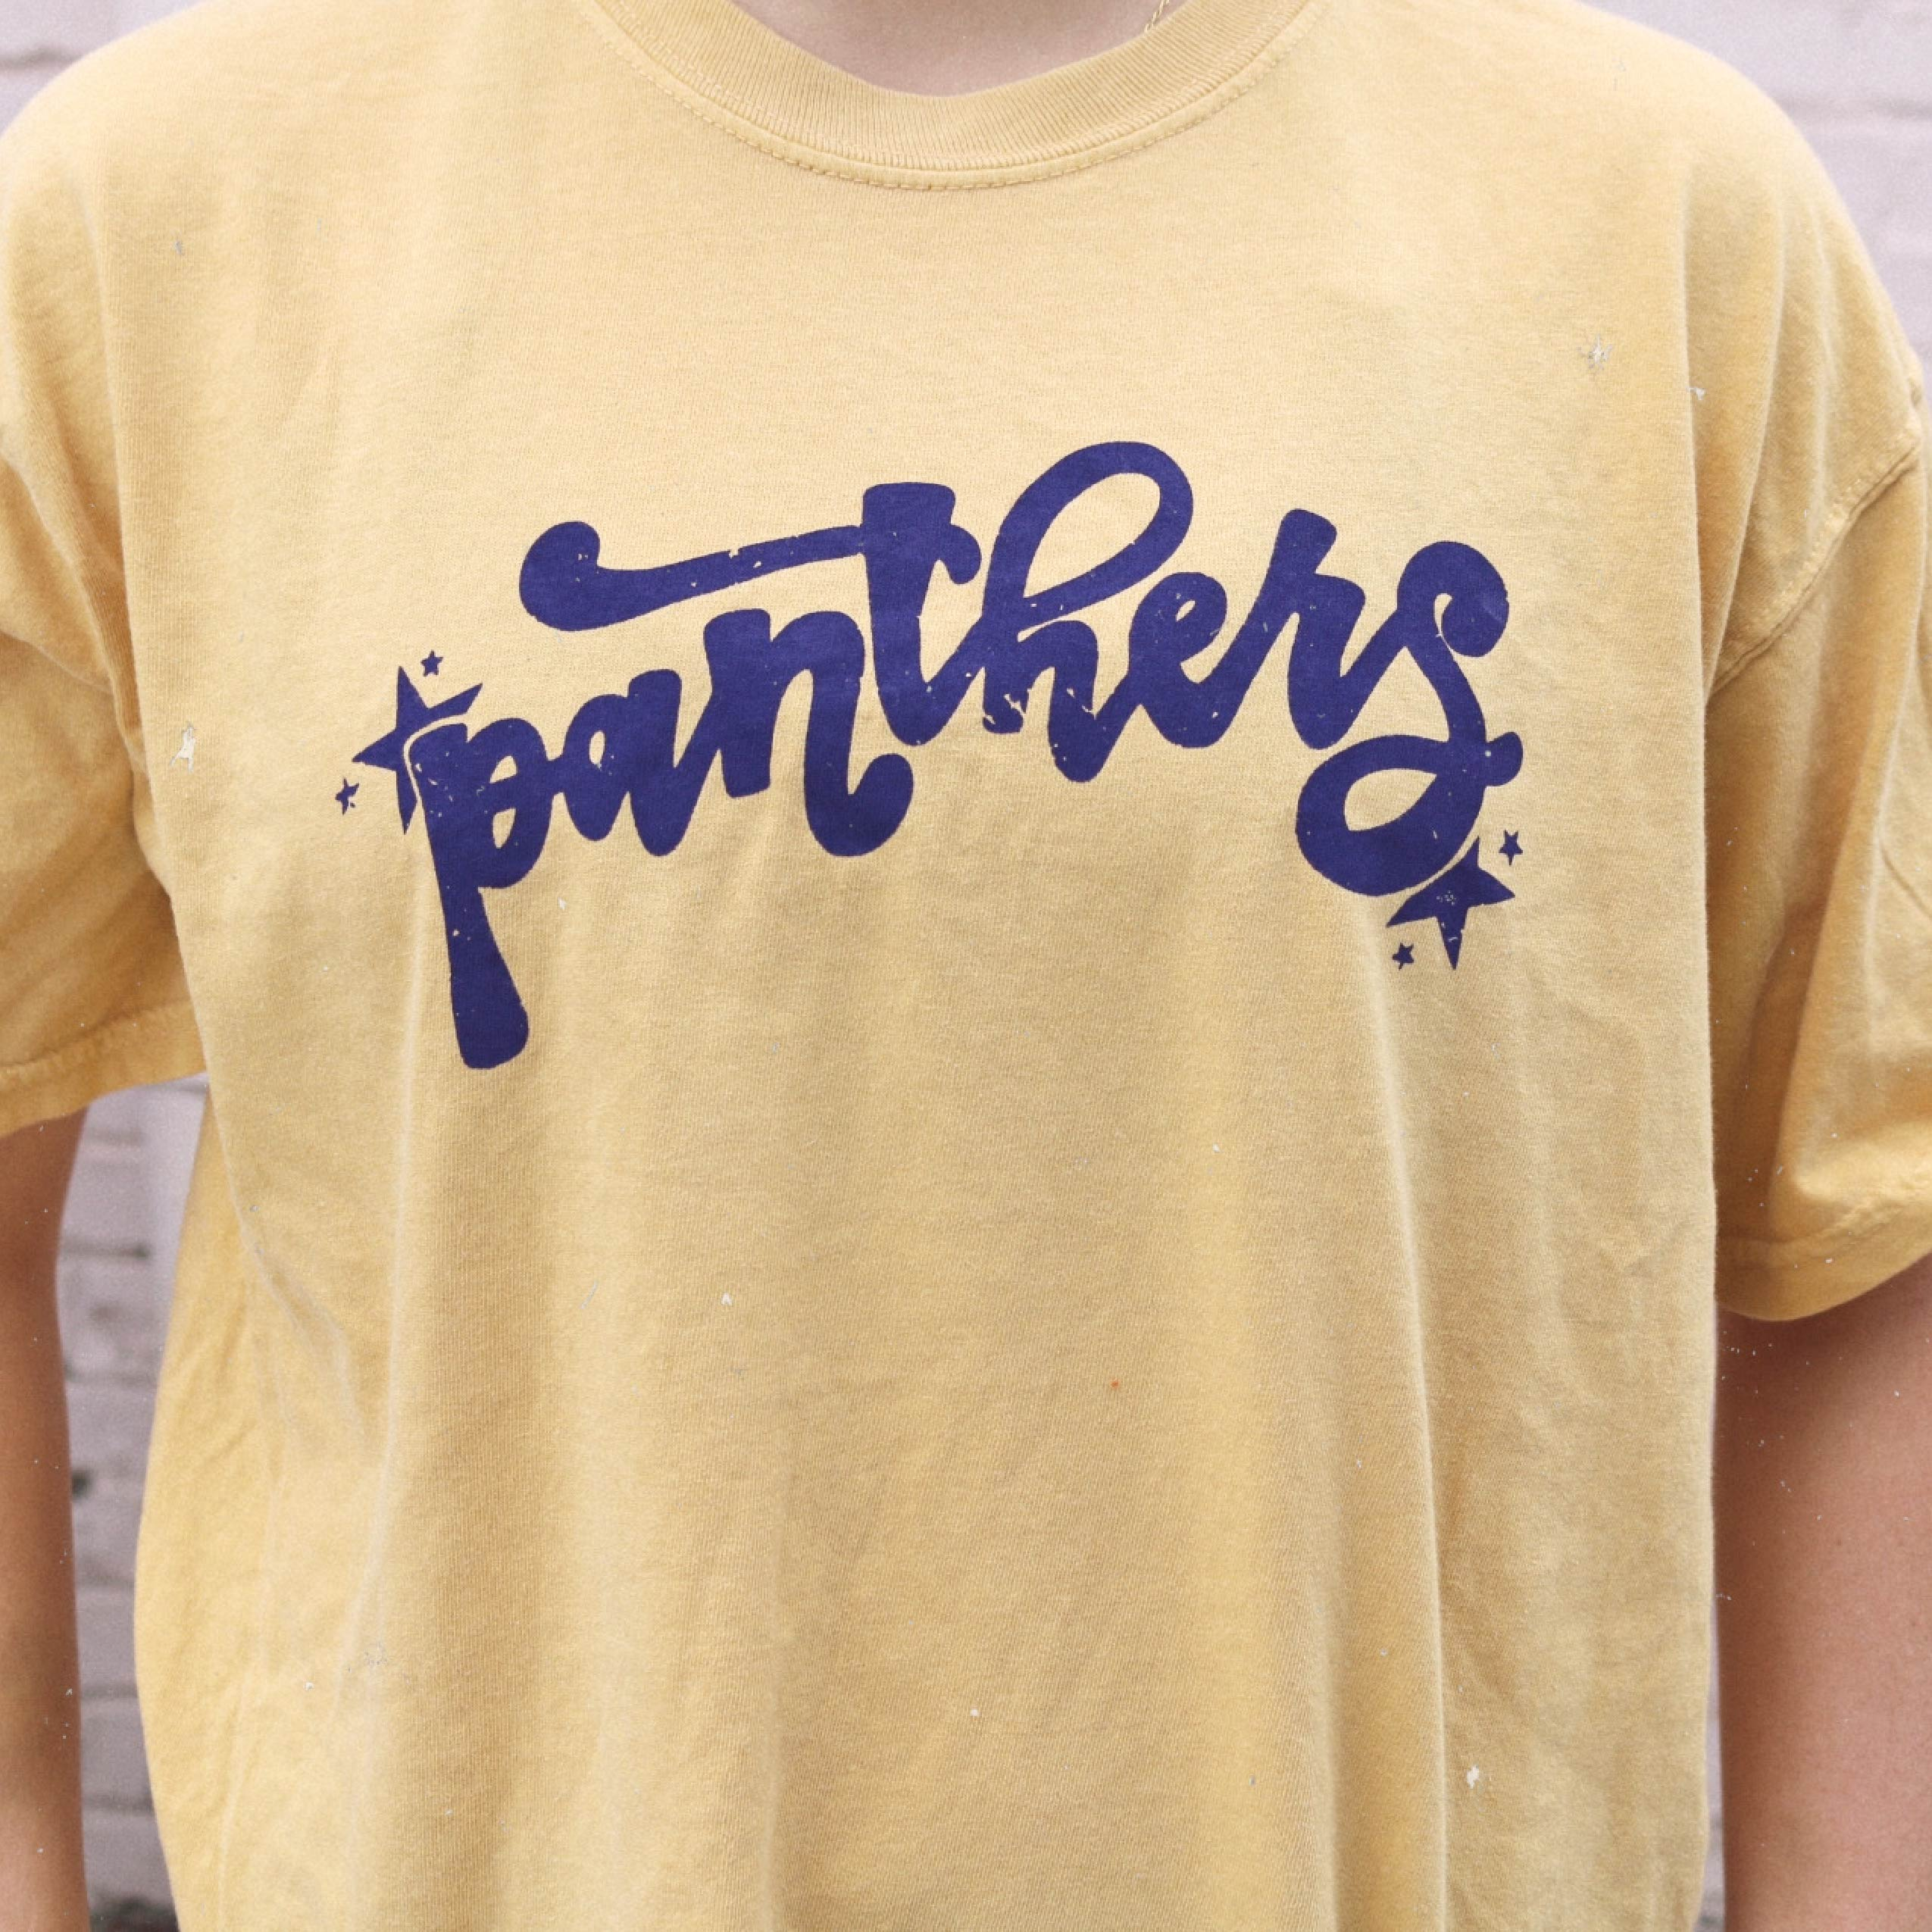 Panthers - Shirt